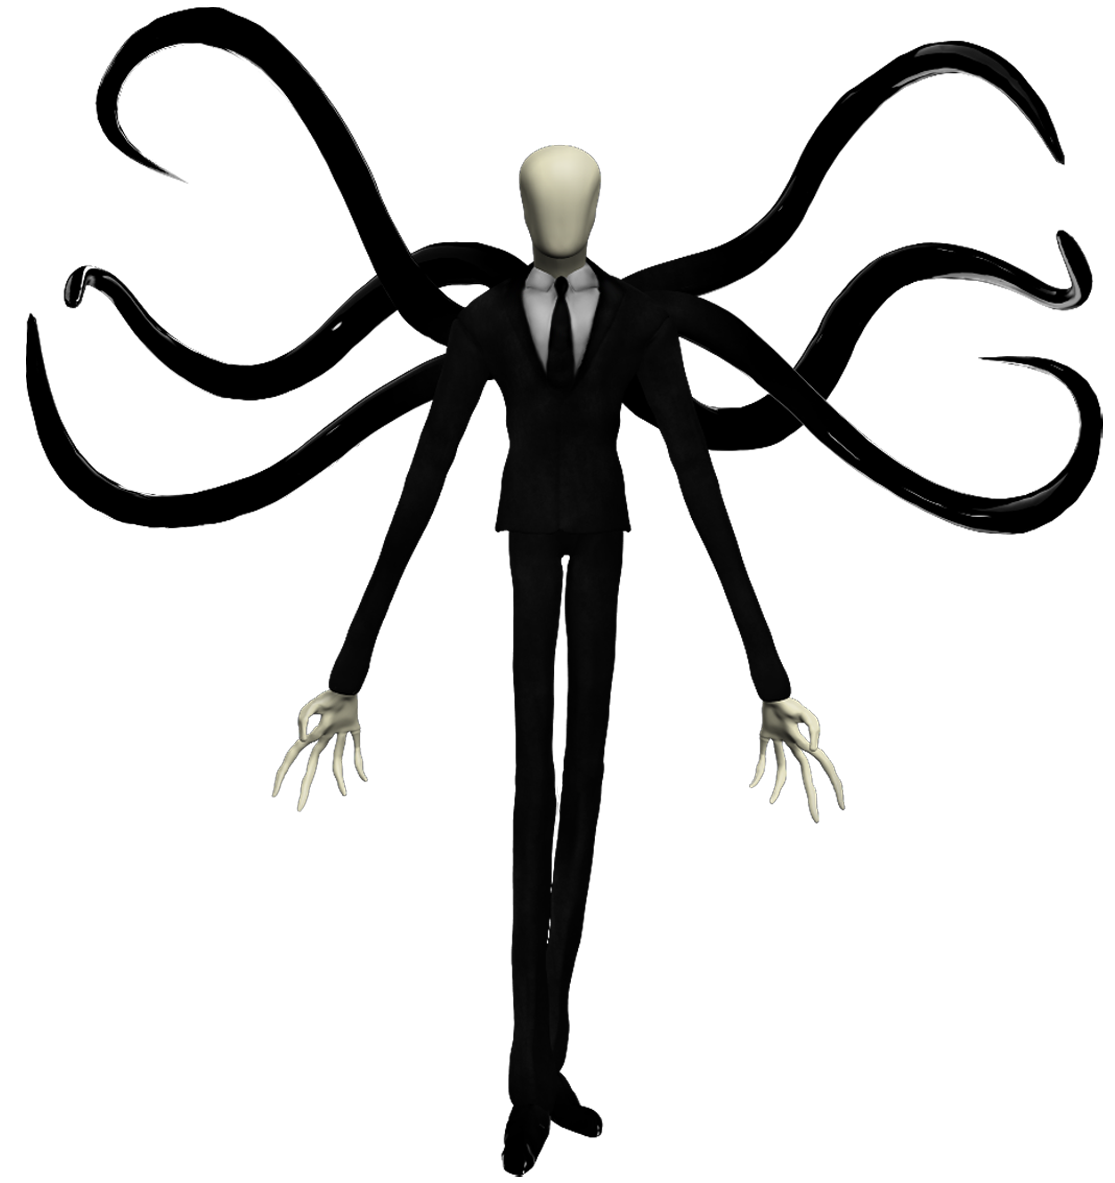 Slender man png. Markiplier wiki fandom powered